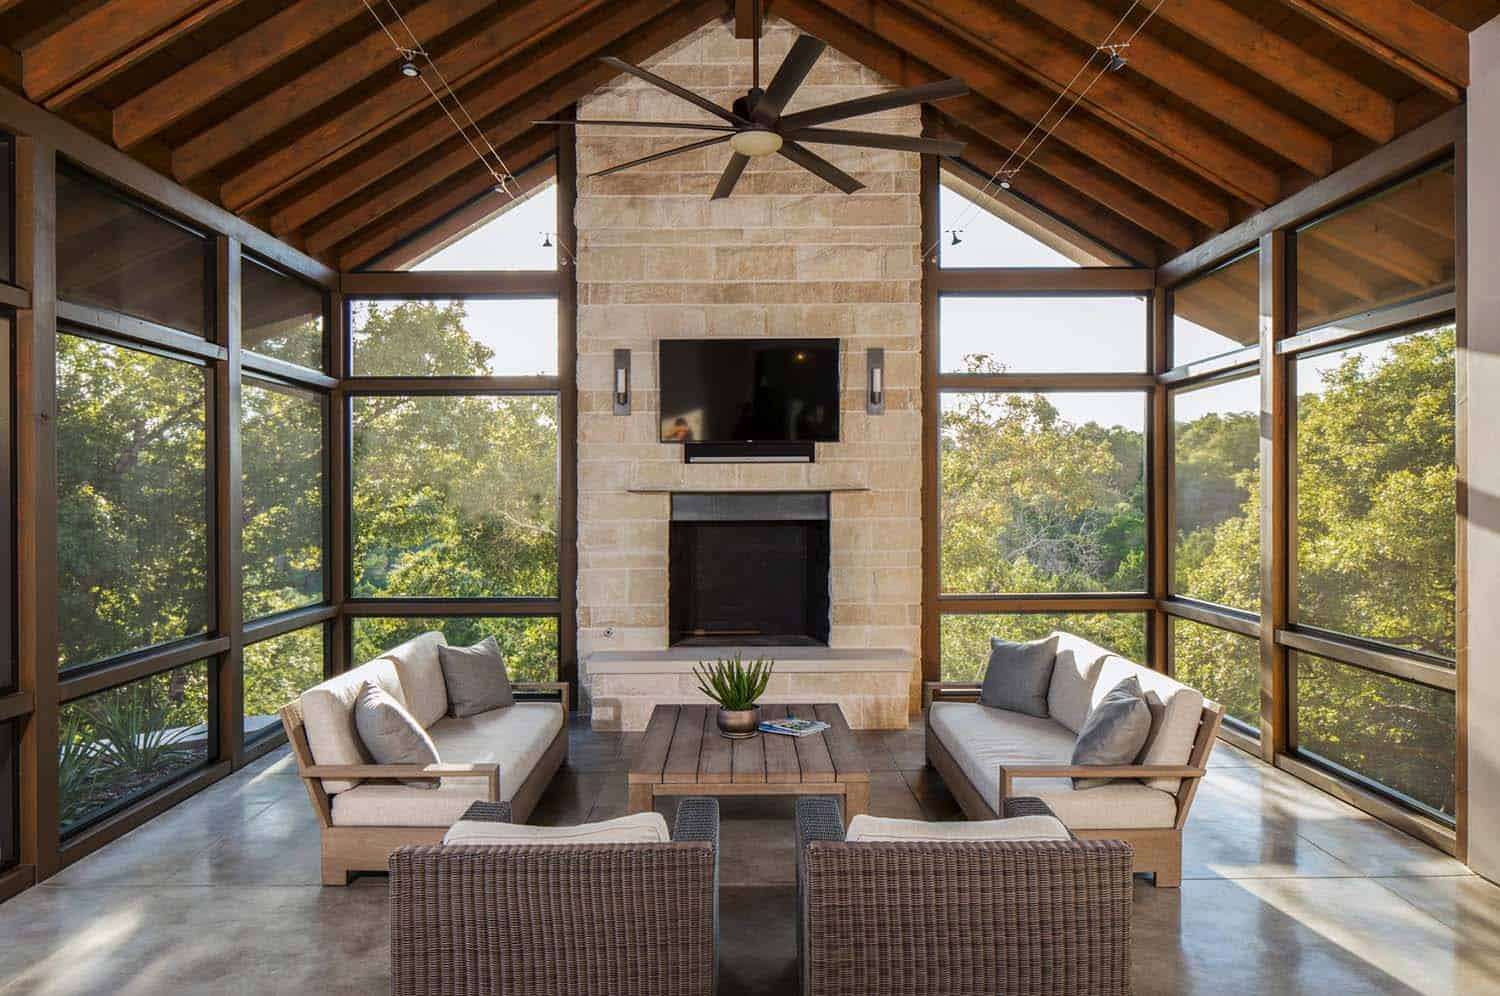 Patio Screening Ideas 38 Amazingly Cozy And Relaxing Screened Porch Design Ideas